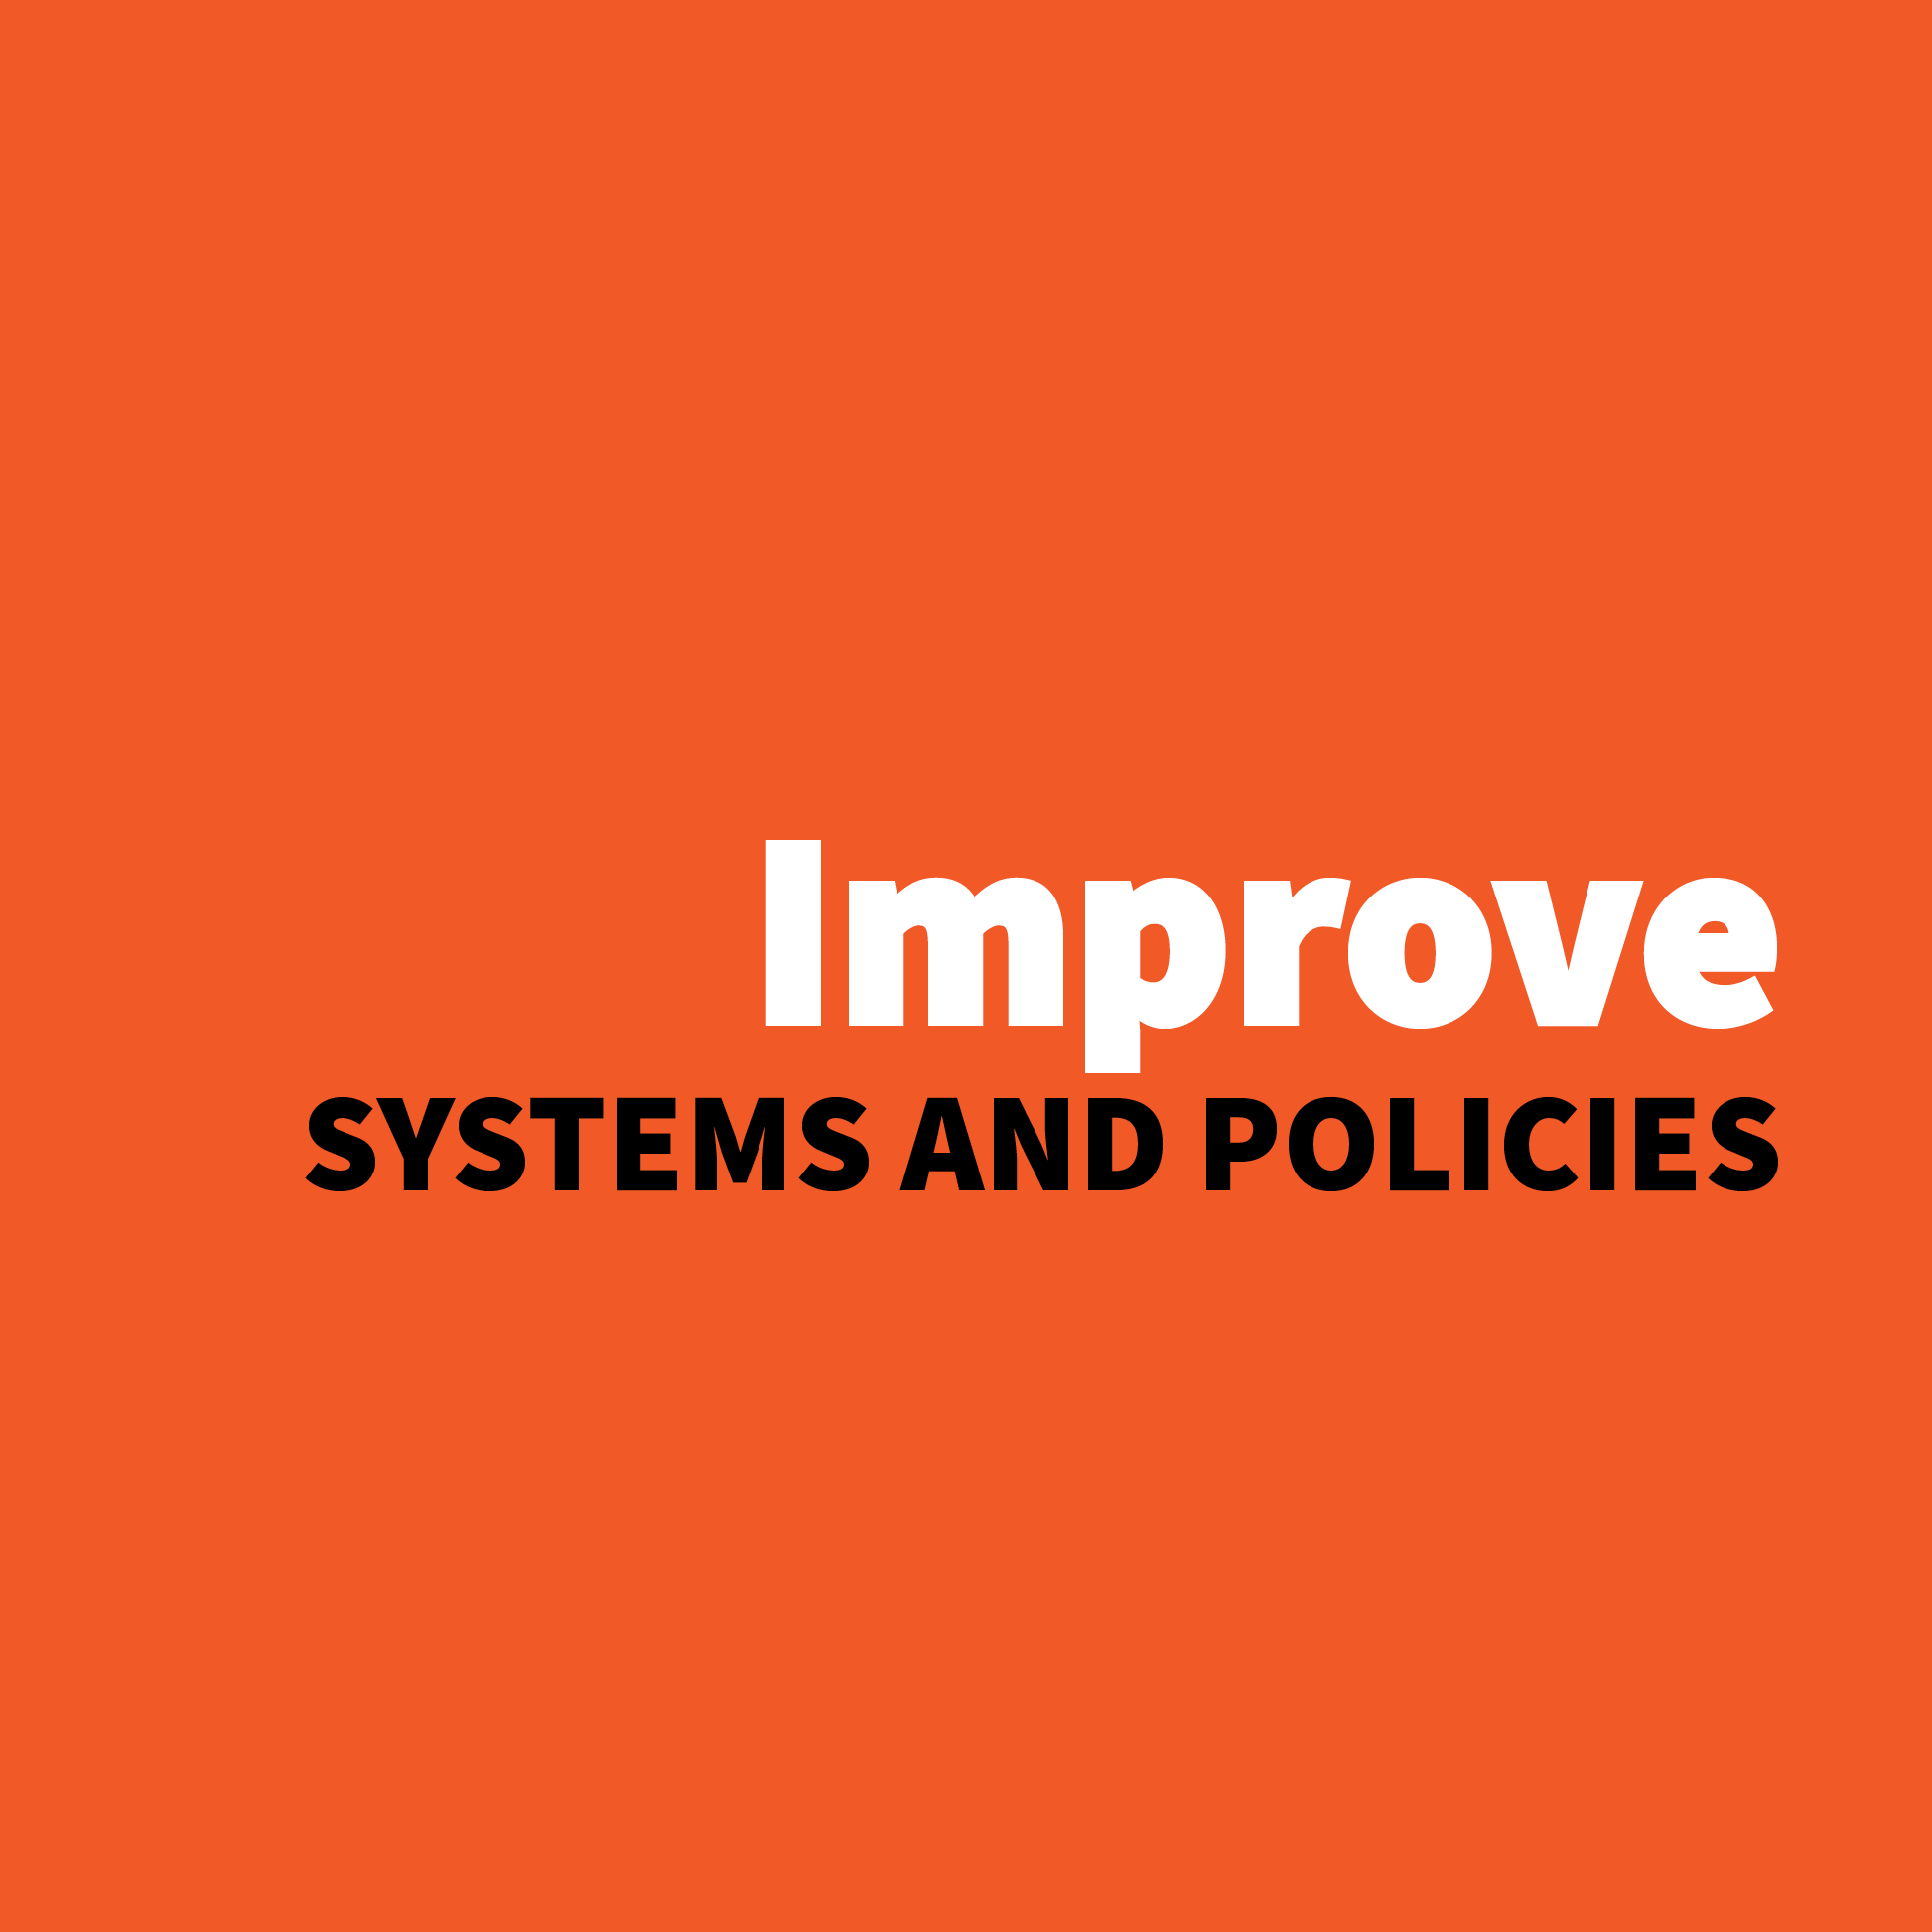 Improve Systems and Policies